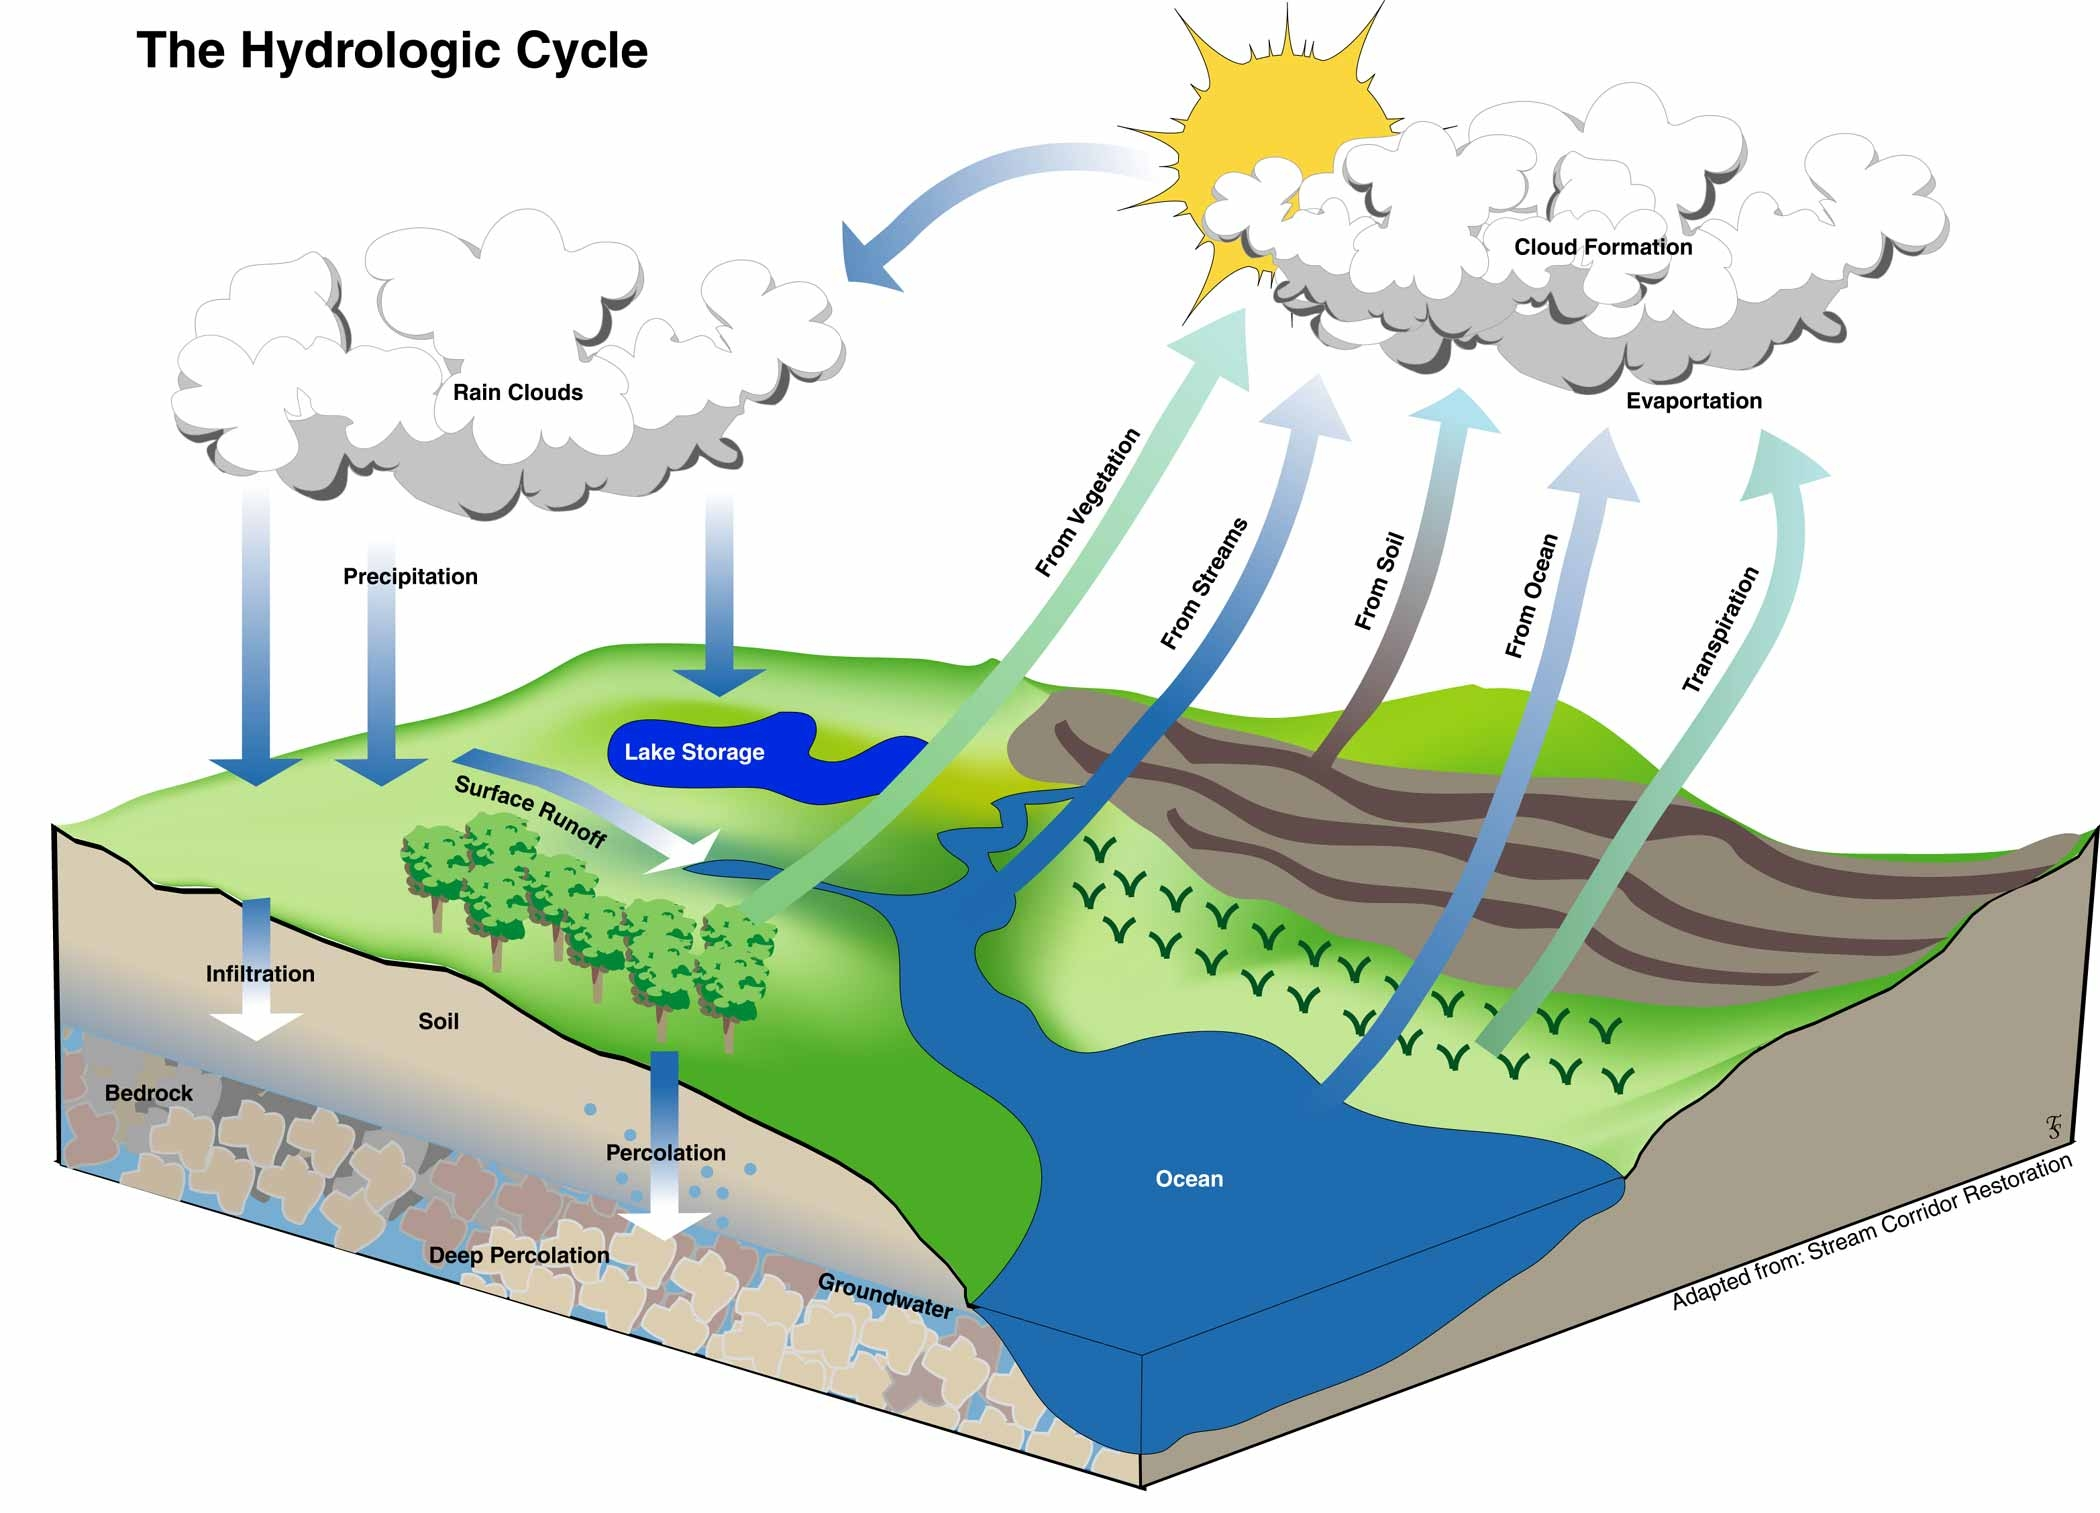 diagram of the Hydrologic Cycle